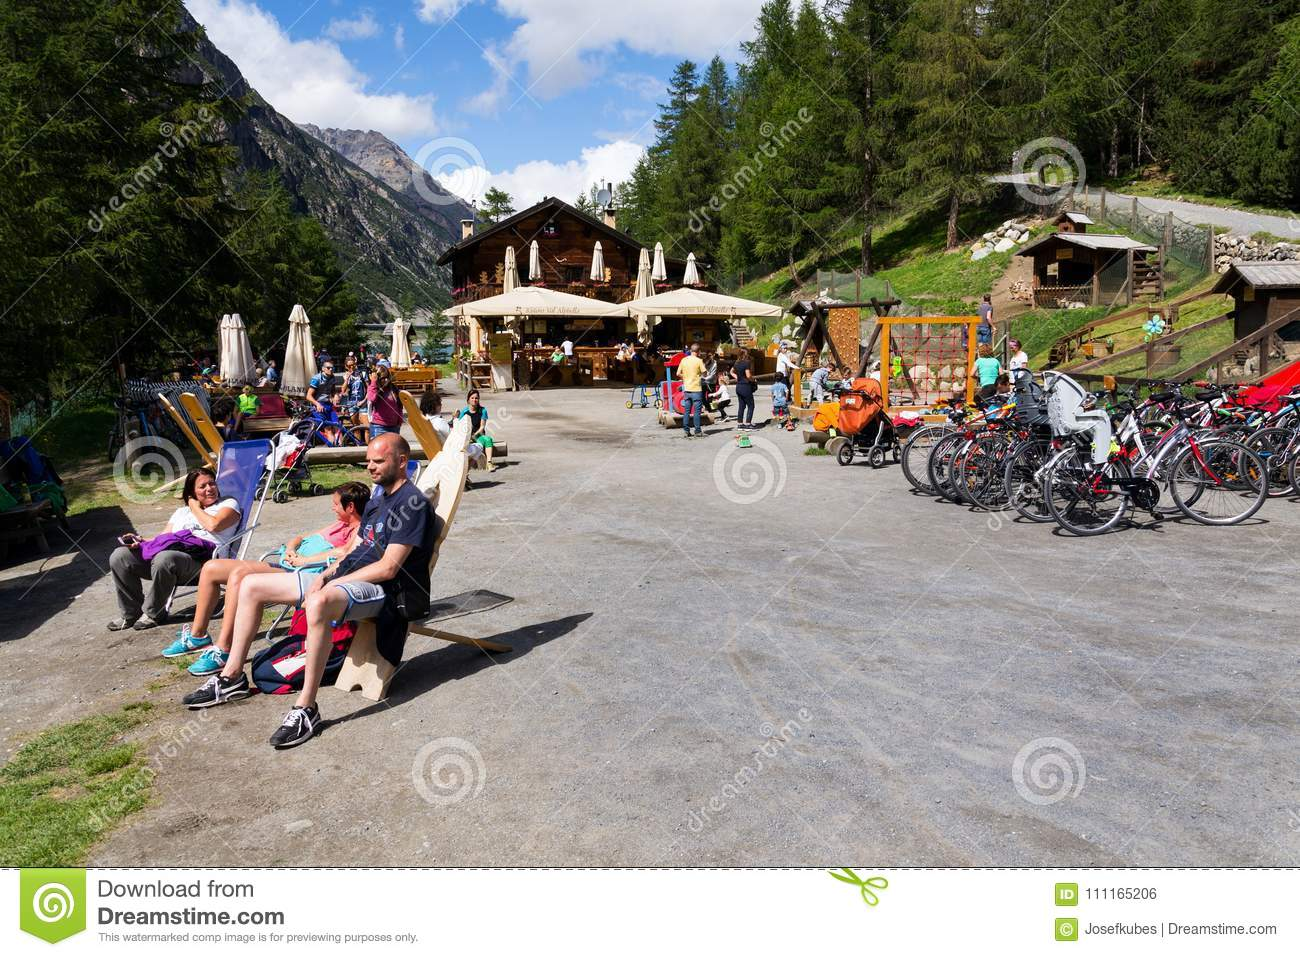 People sunbathing in front of restaurant with playing kids and bikes on bank of Lago di Livigno in Livigno, Italy